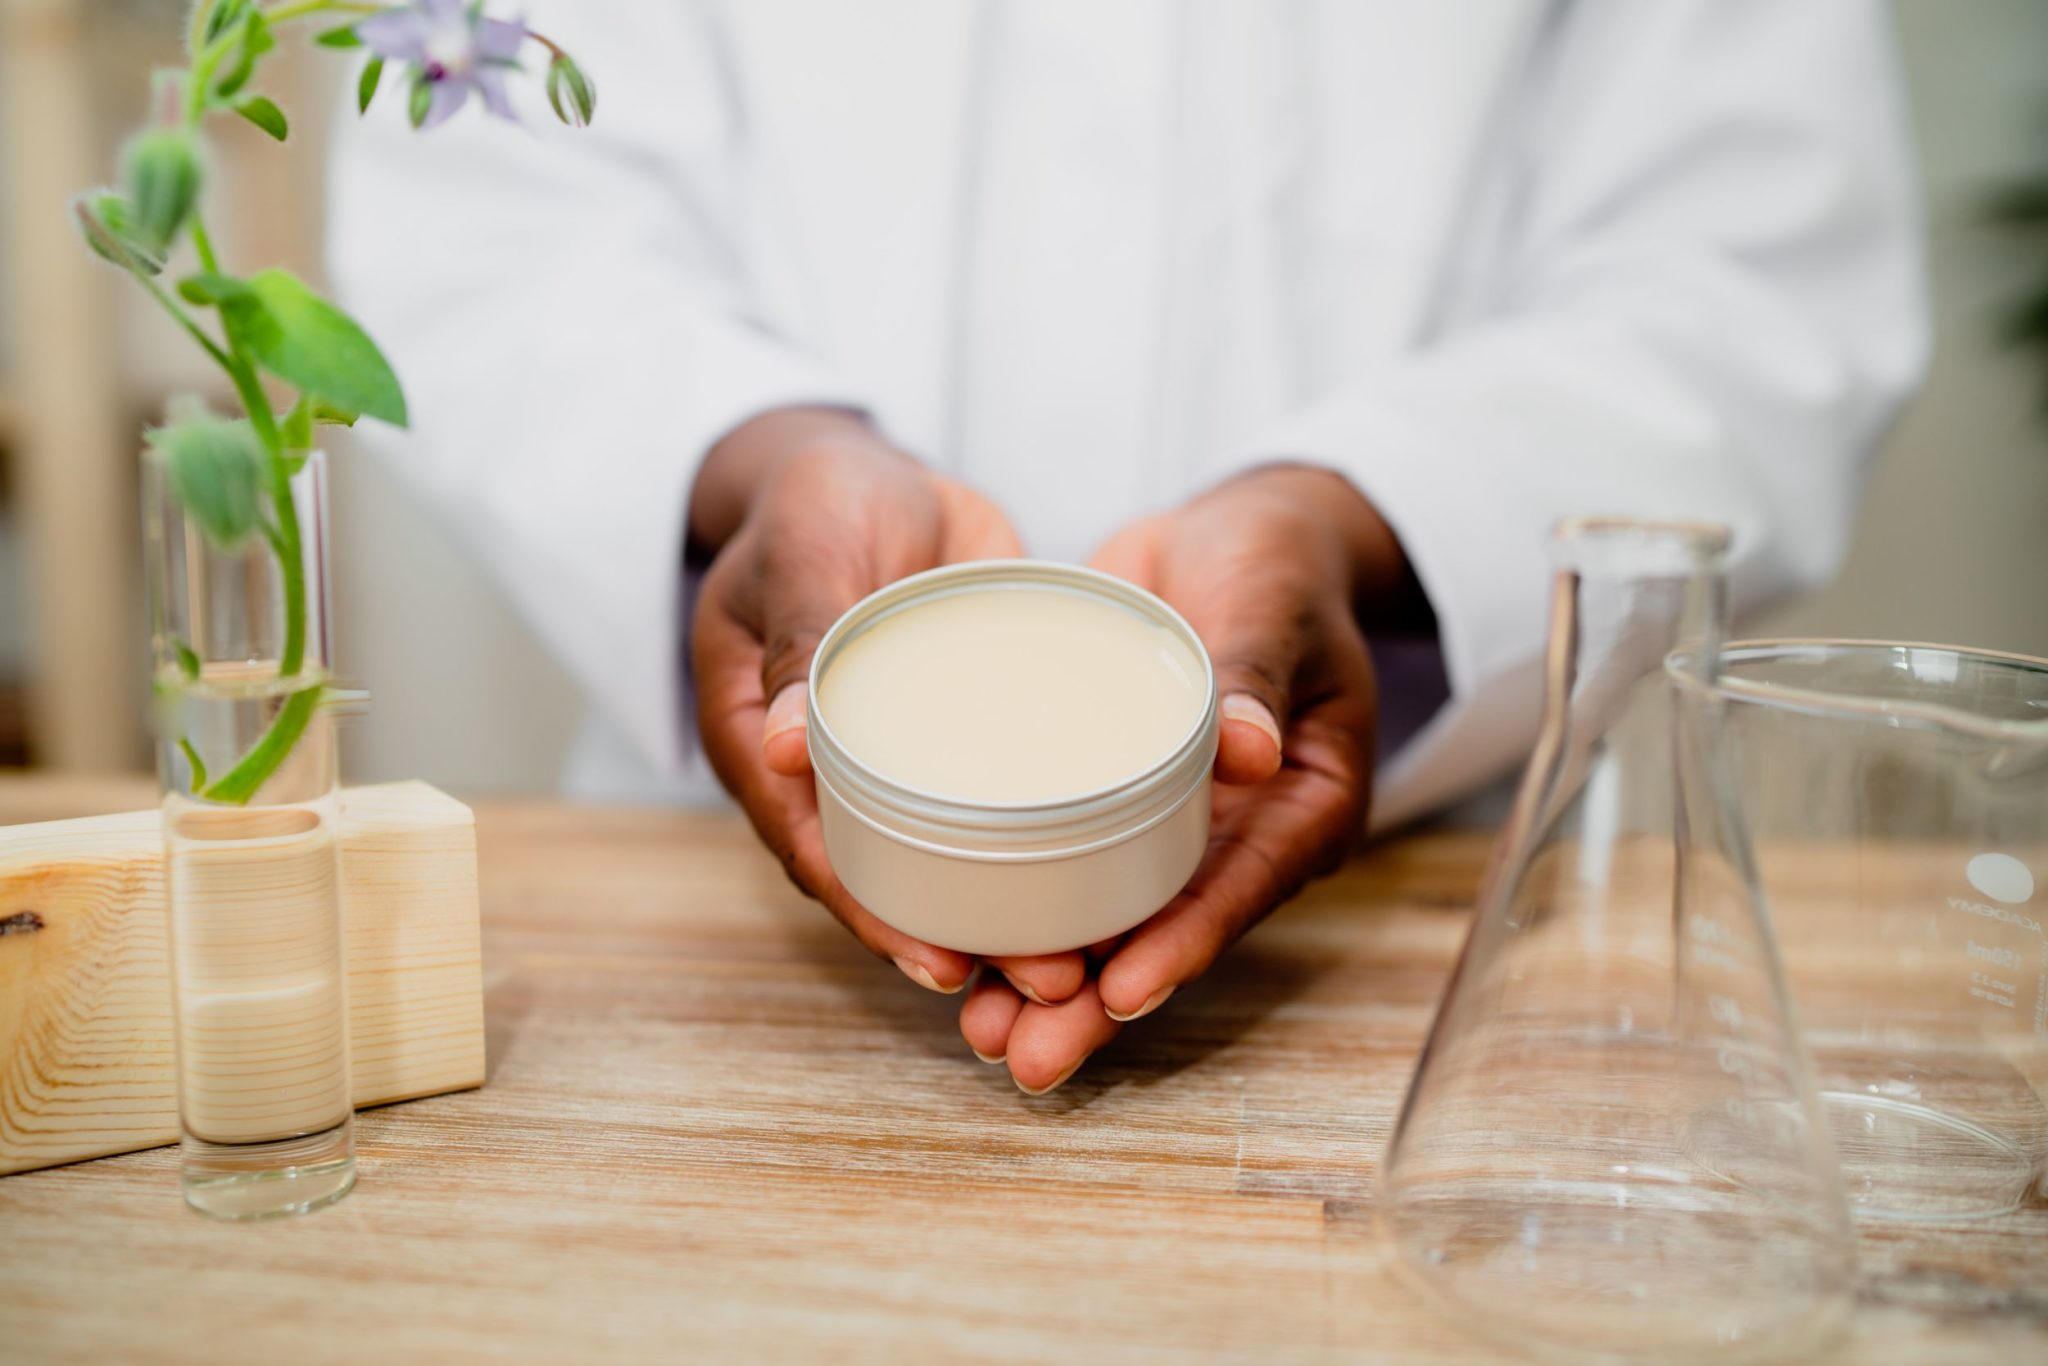 How do You Know What Ingredients and Their Quantities to Use in a Natural Skincare Recipe? Getting started